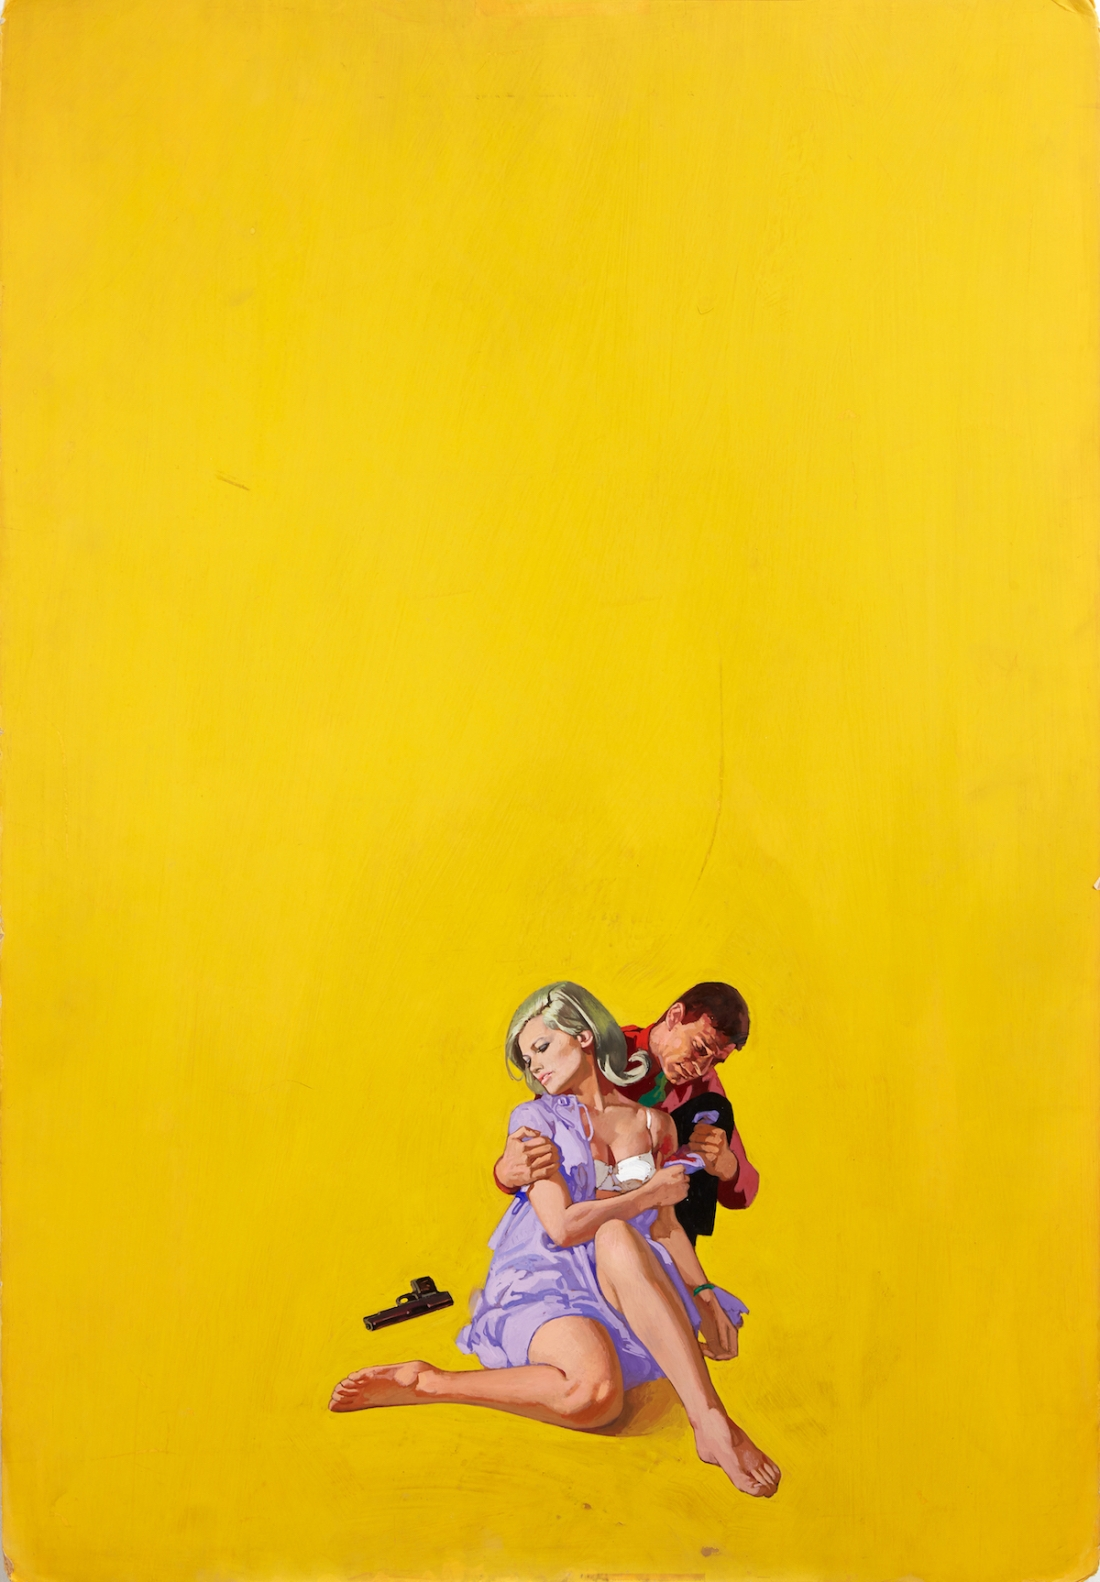 Renato Fratini, The Twisted Thing, 1967, gouache on board, copyright Lever Gallery